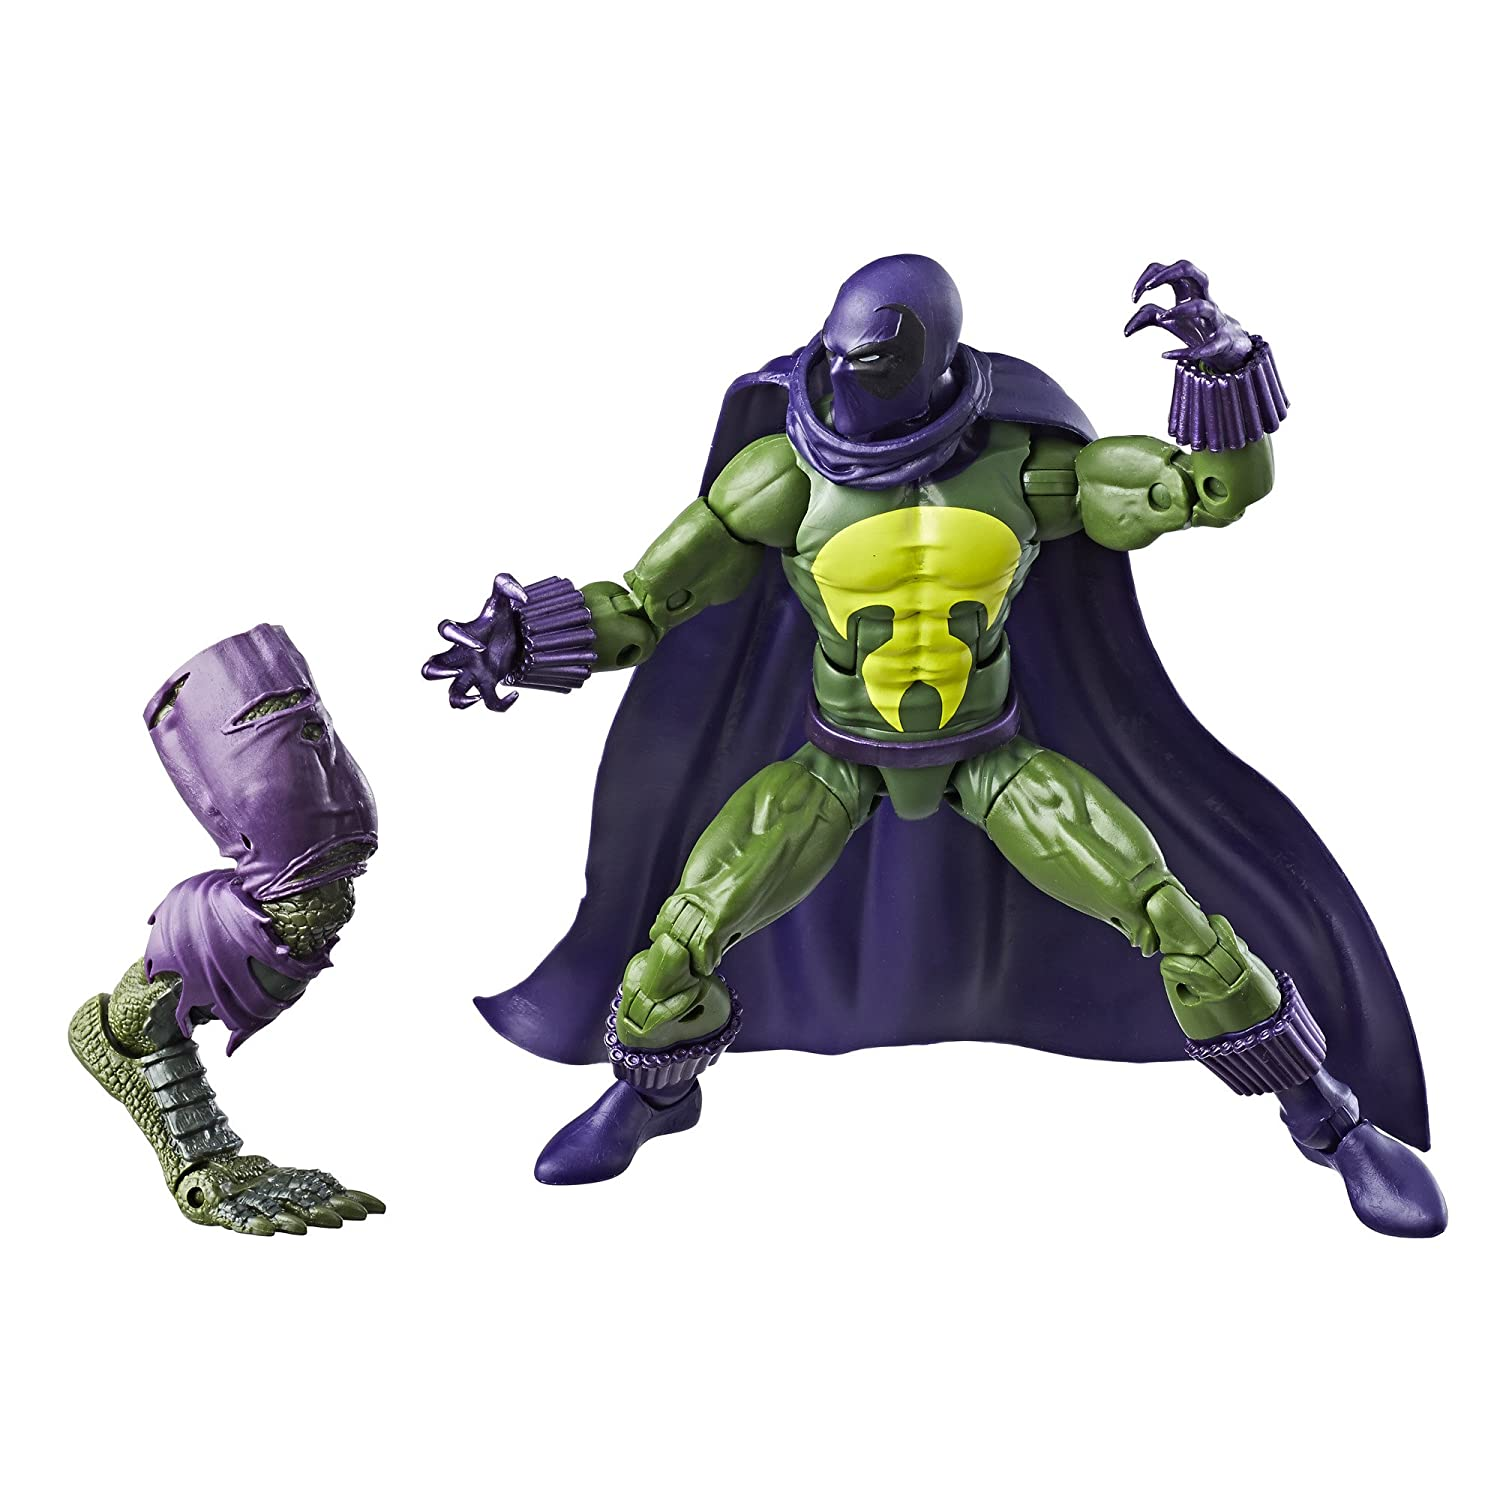 Spider-Man Legends Series 6-inch Marvel's Prowler Hasbro E1302